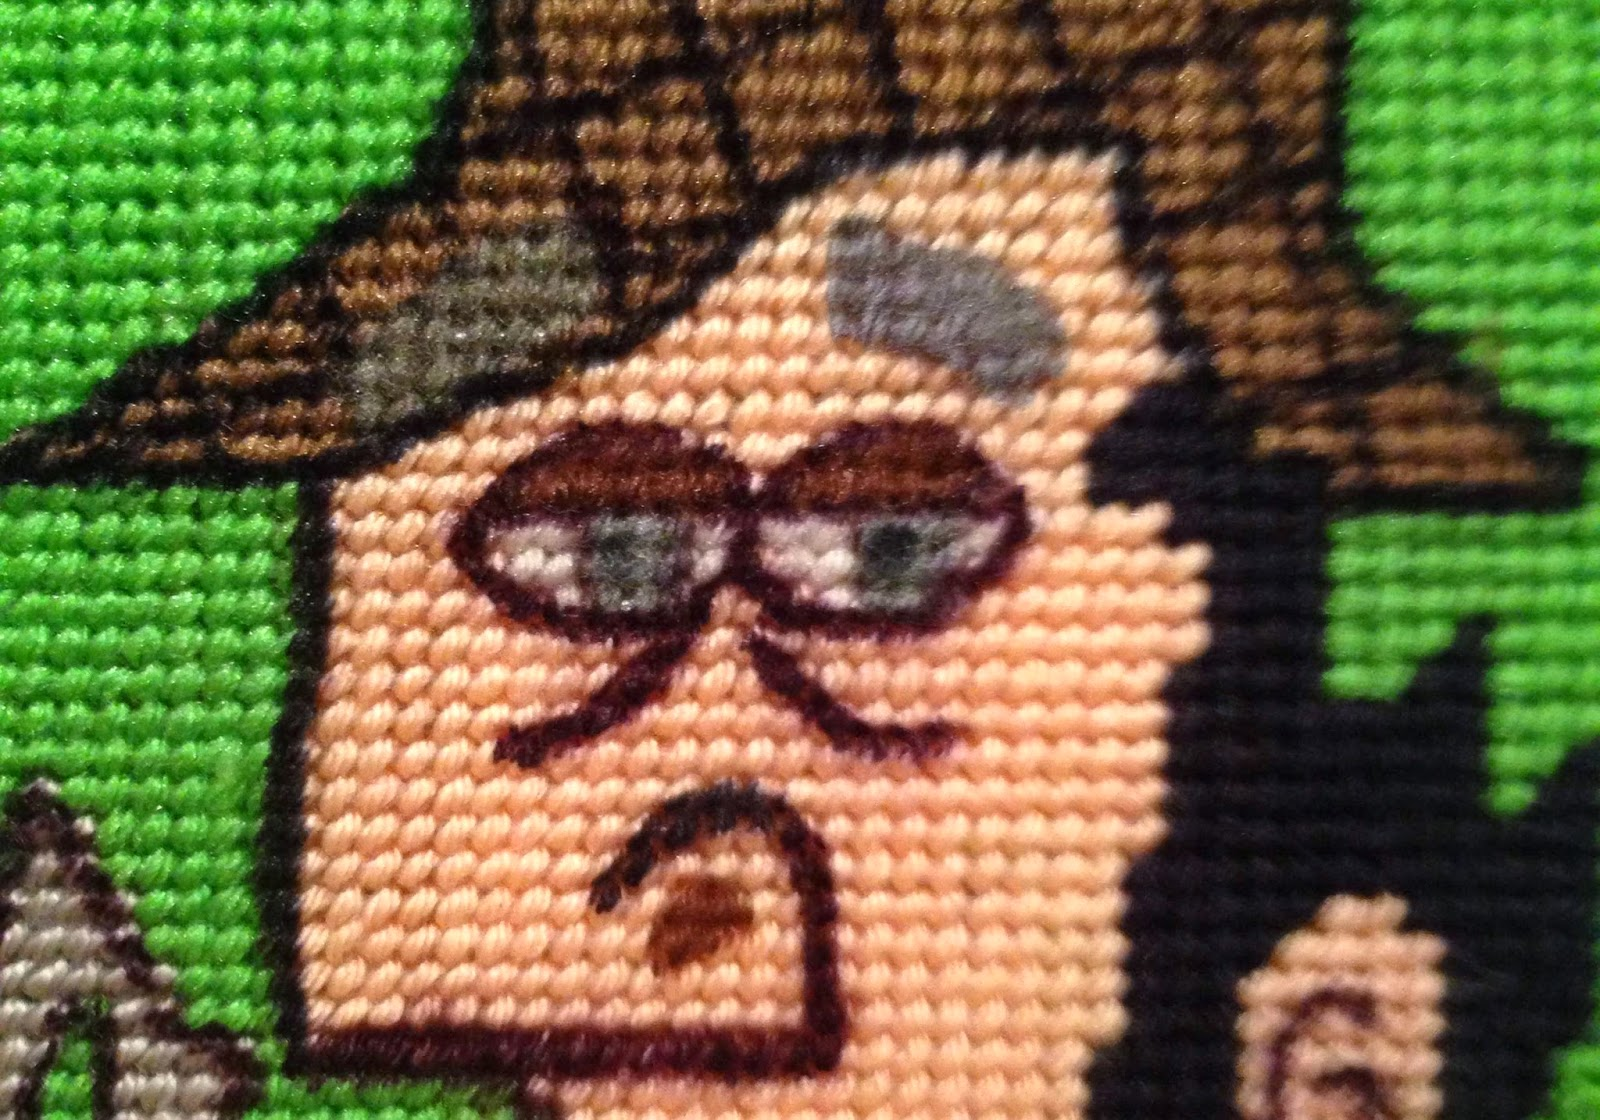 Sherlockian needlepoint closeup